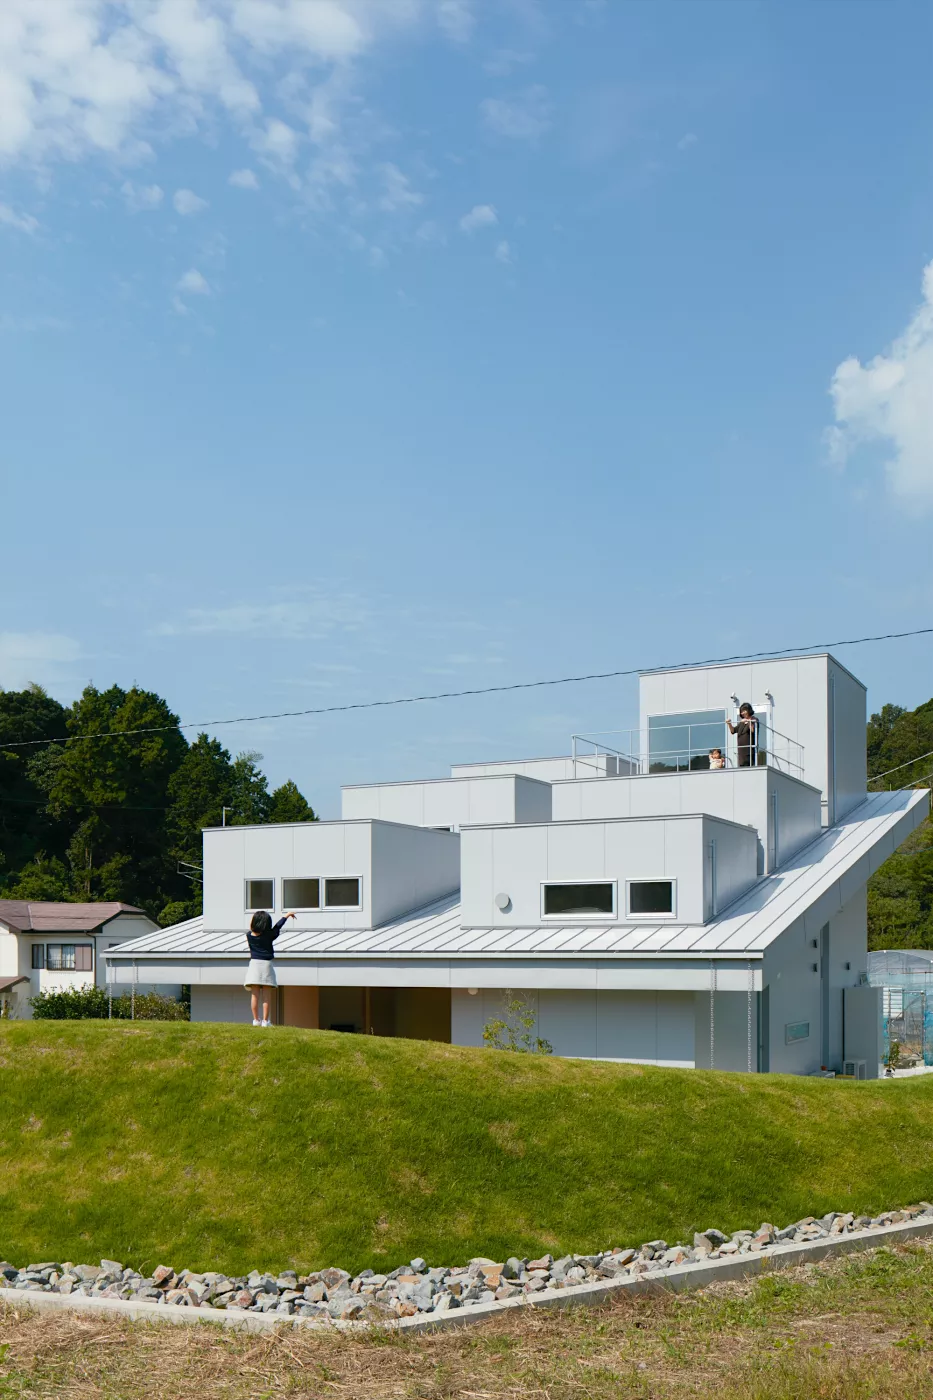 Photo 4 of 6 in House in Tokushima by Fujiwara-Muro Architects